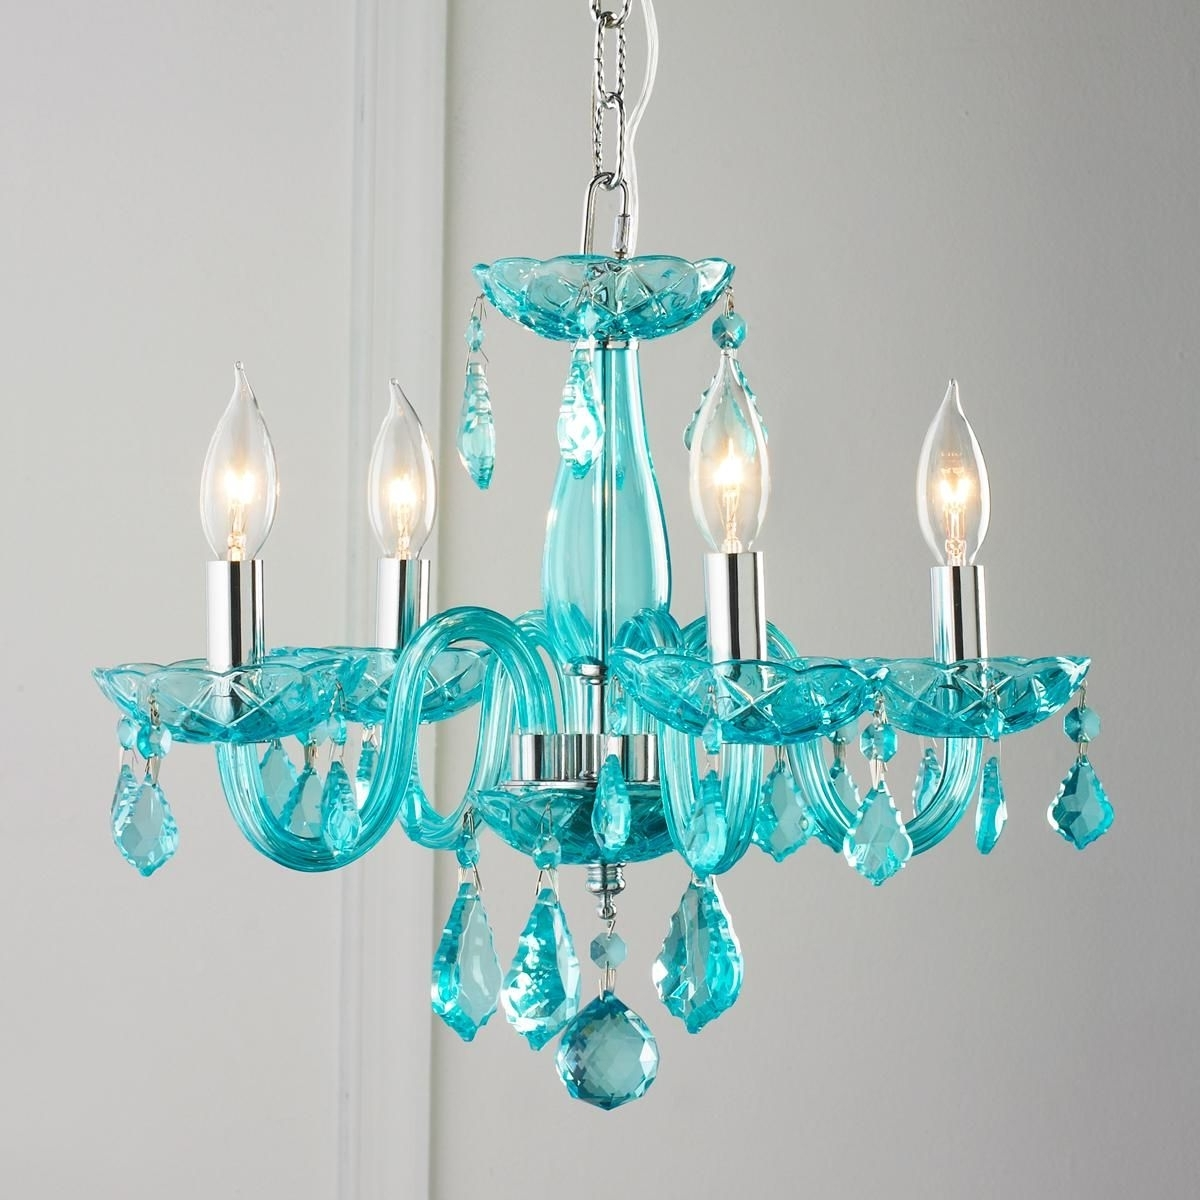 Mini Chandelier, Ceiling Canopy And Regarding Turquoise Chandelier Crystals (View 12 of 20)